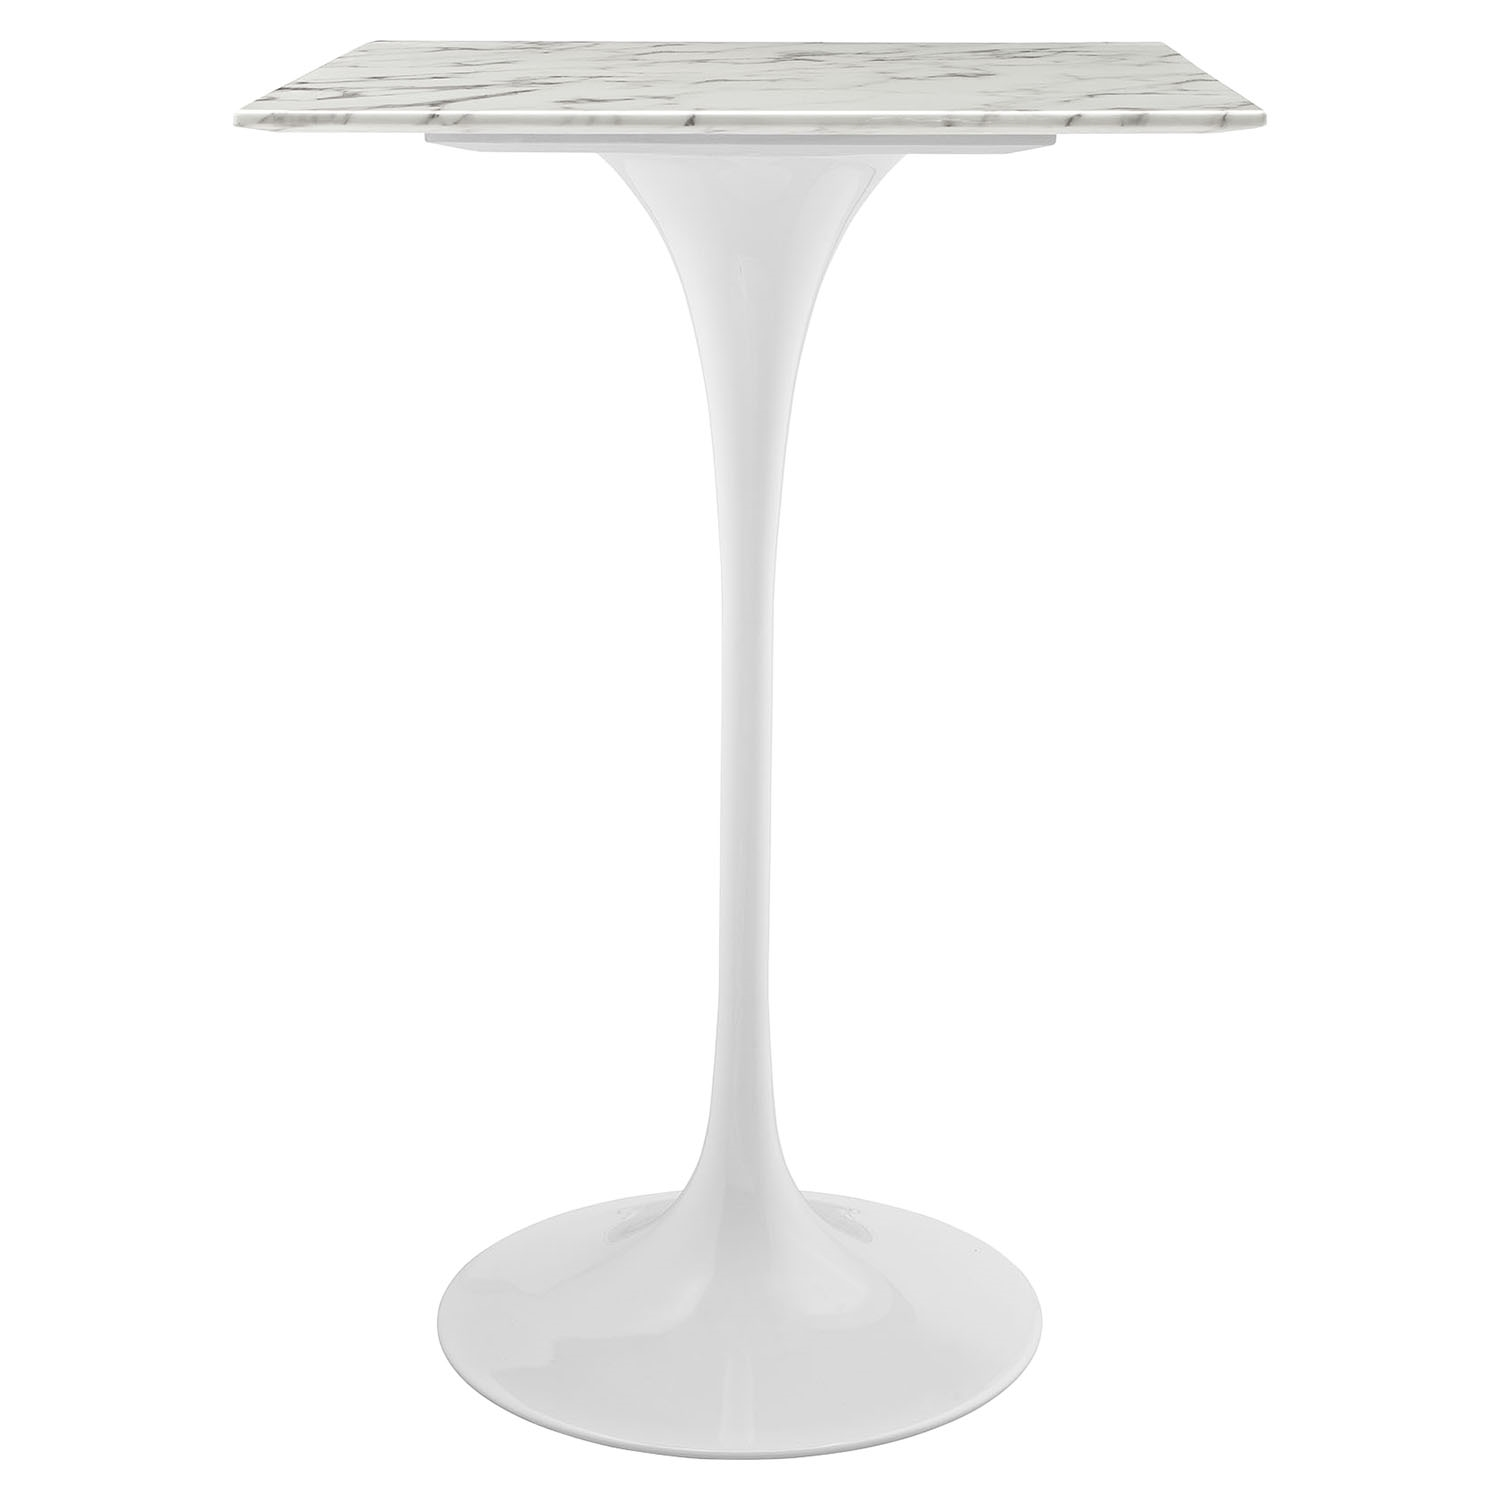 "Lippa 28"" Artificial Marble Bar Table - White, Square - EEI-1828-WHI"